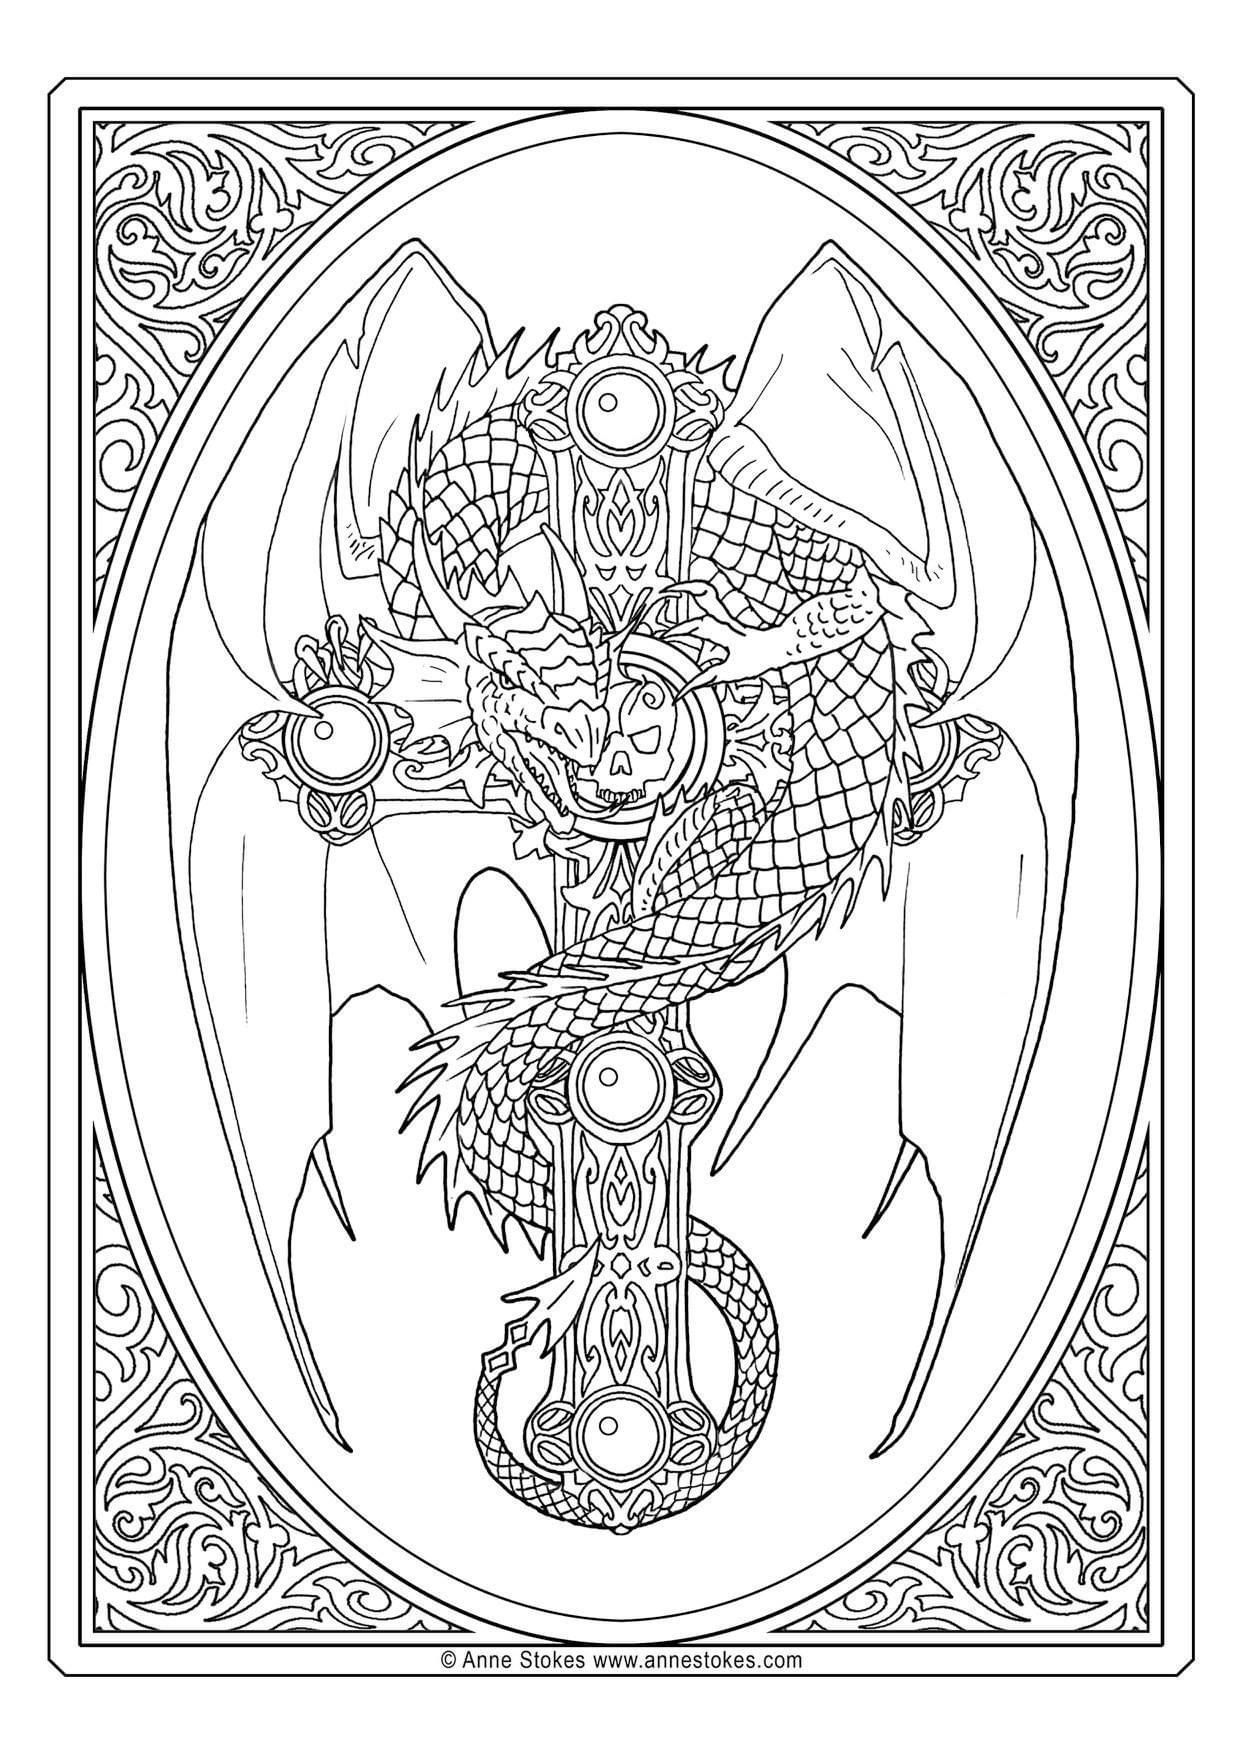 Pin On Anne Stokes